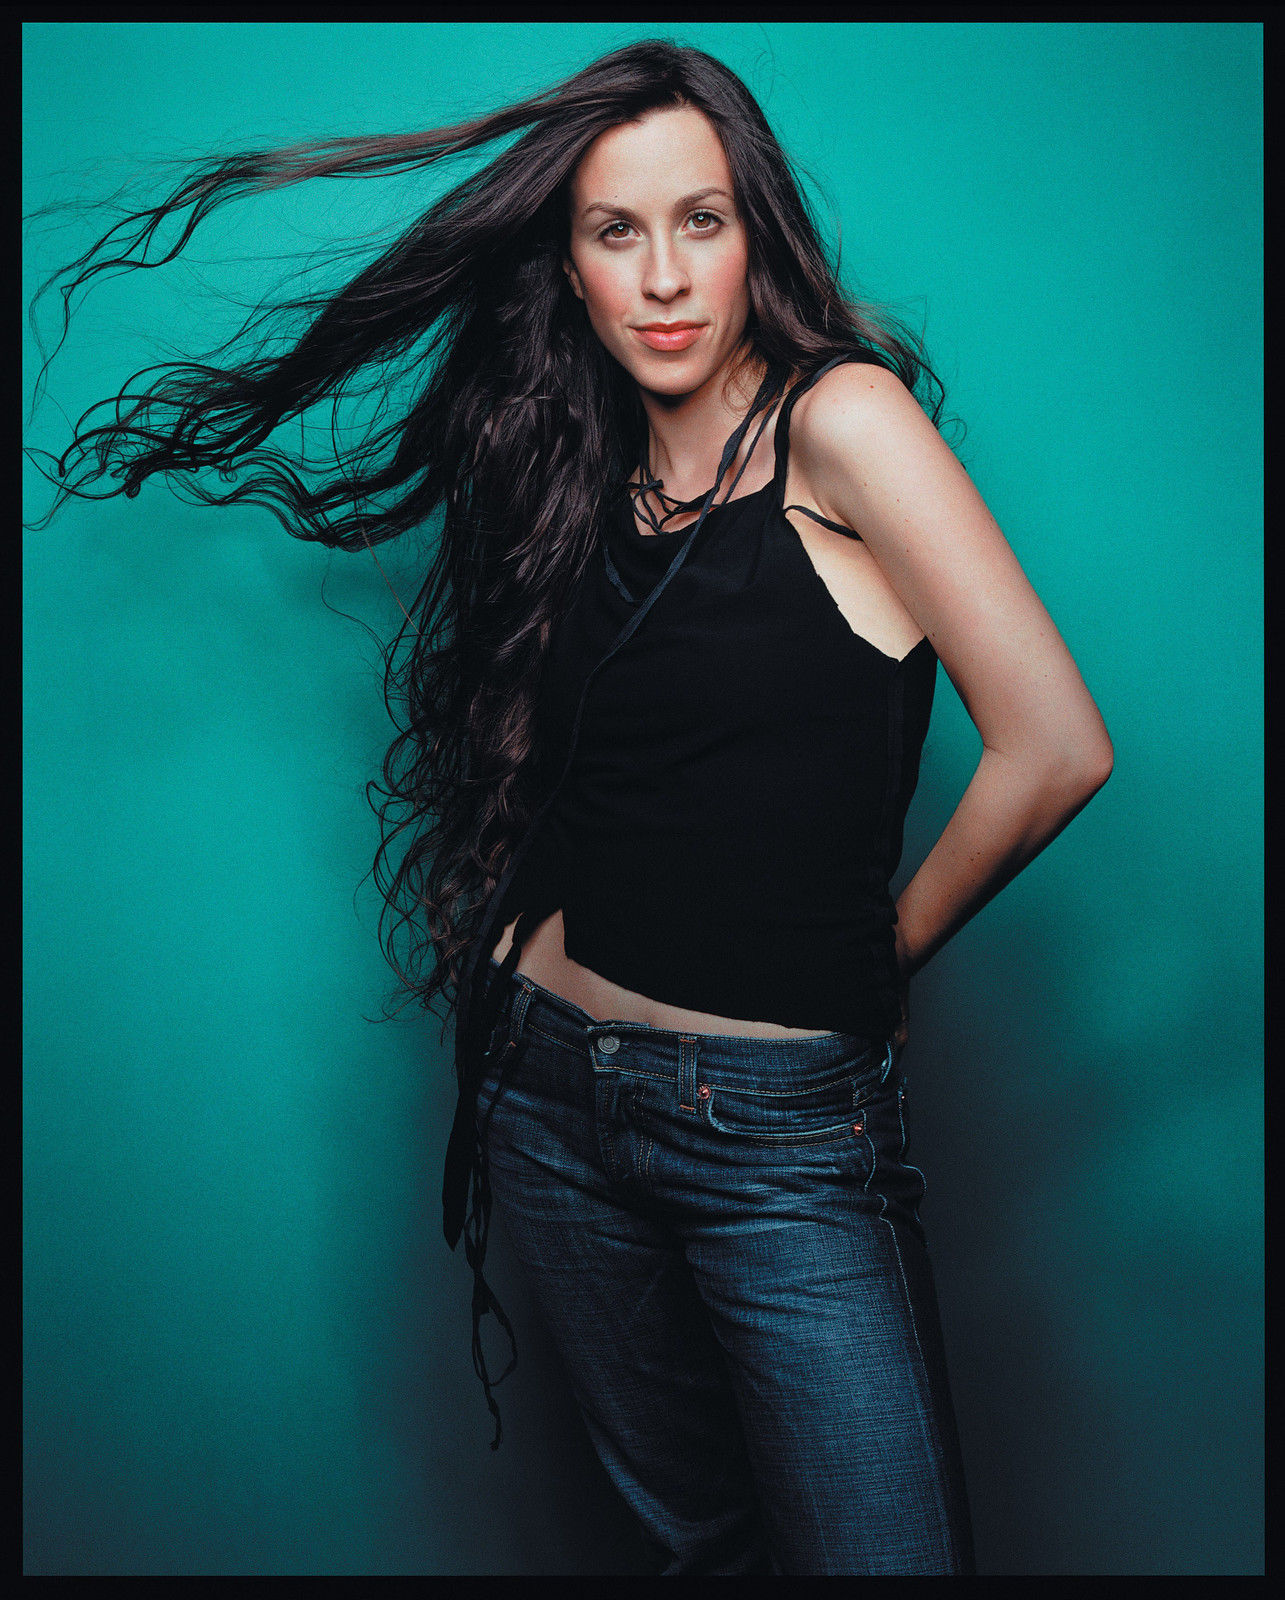 File Alanis Morissette Under Rug Swept Photoshoot 2002